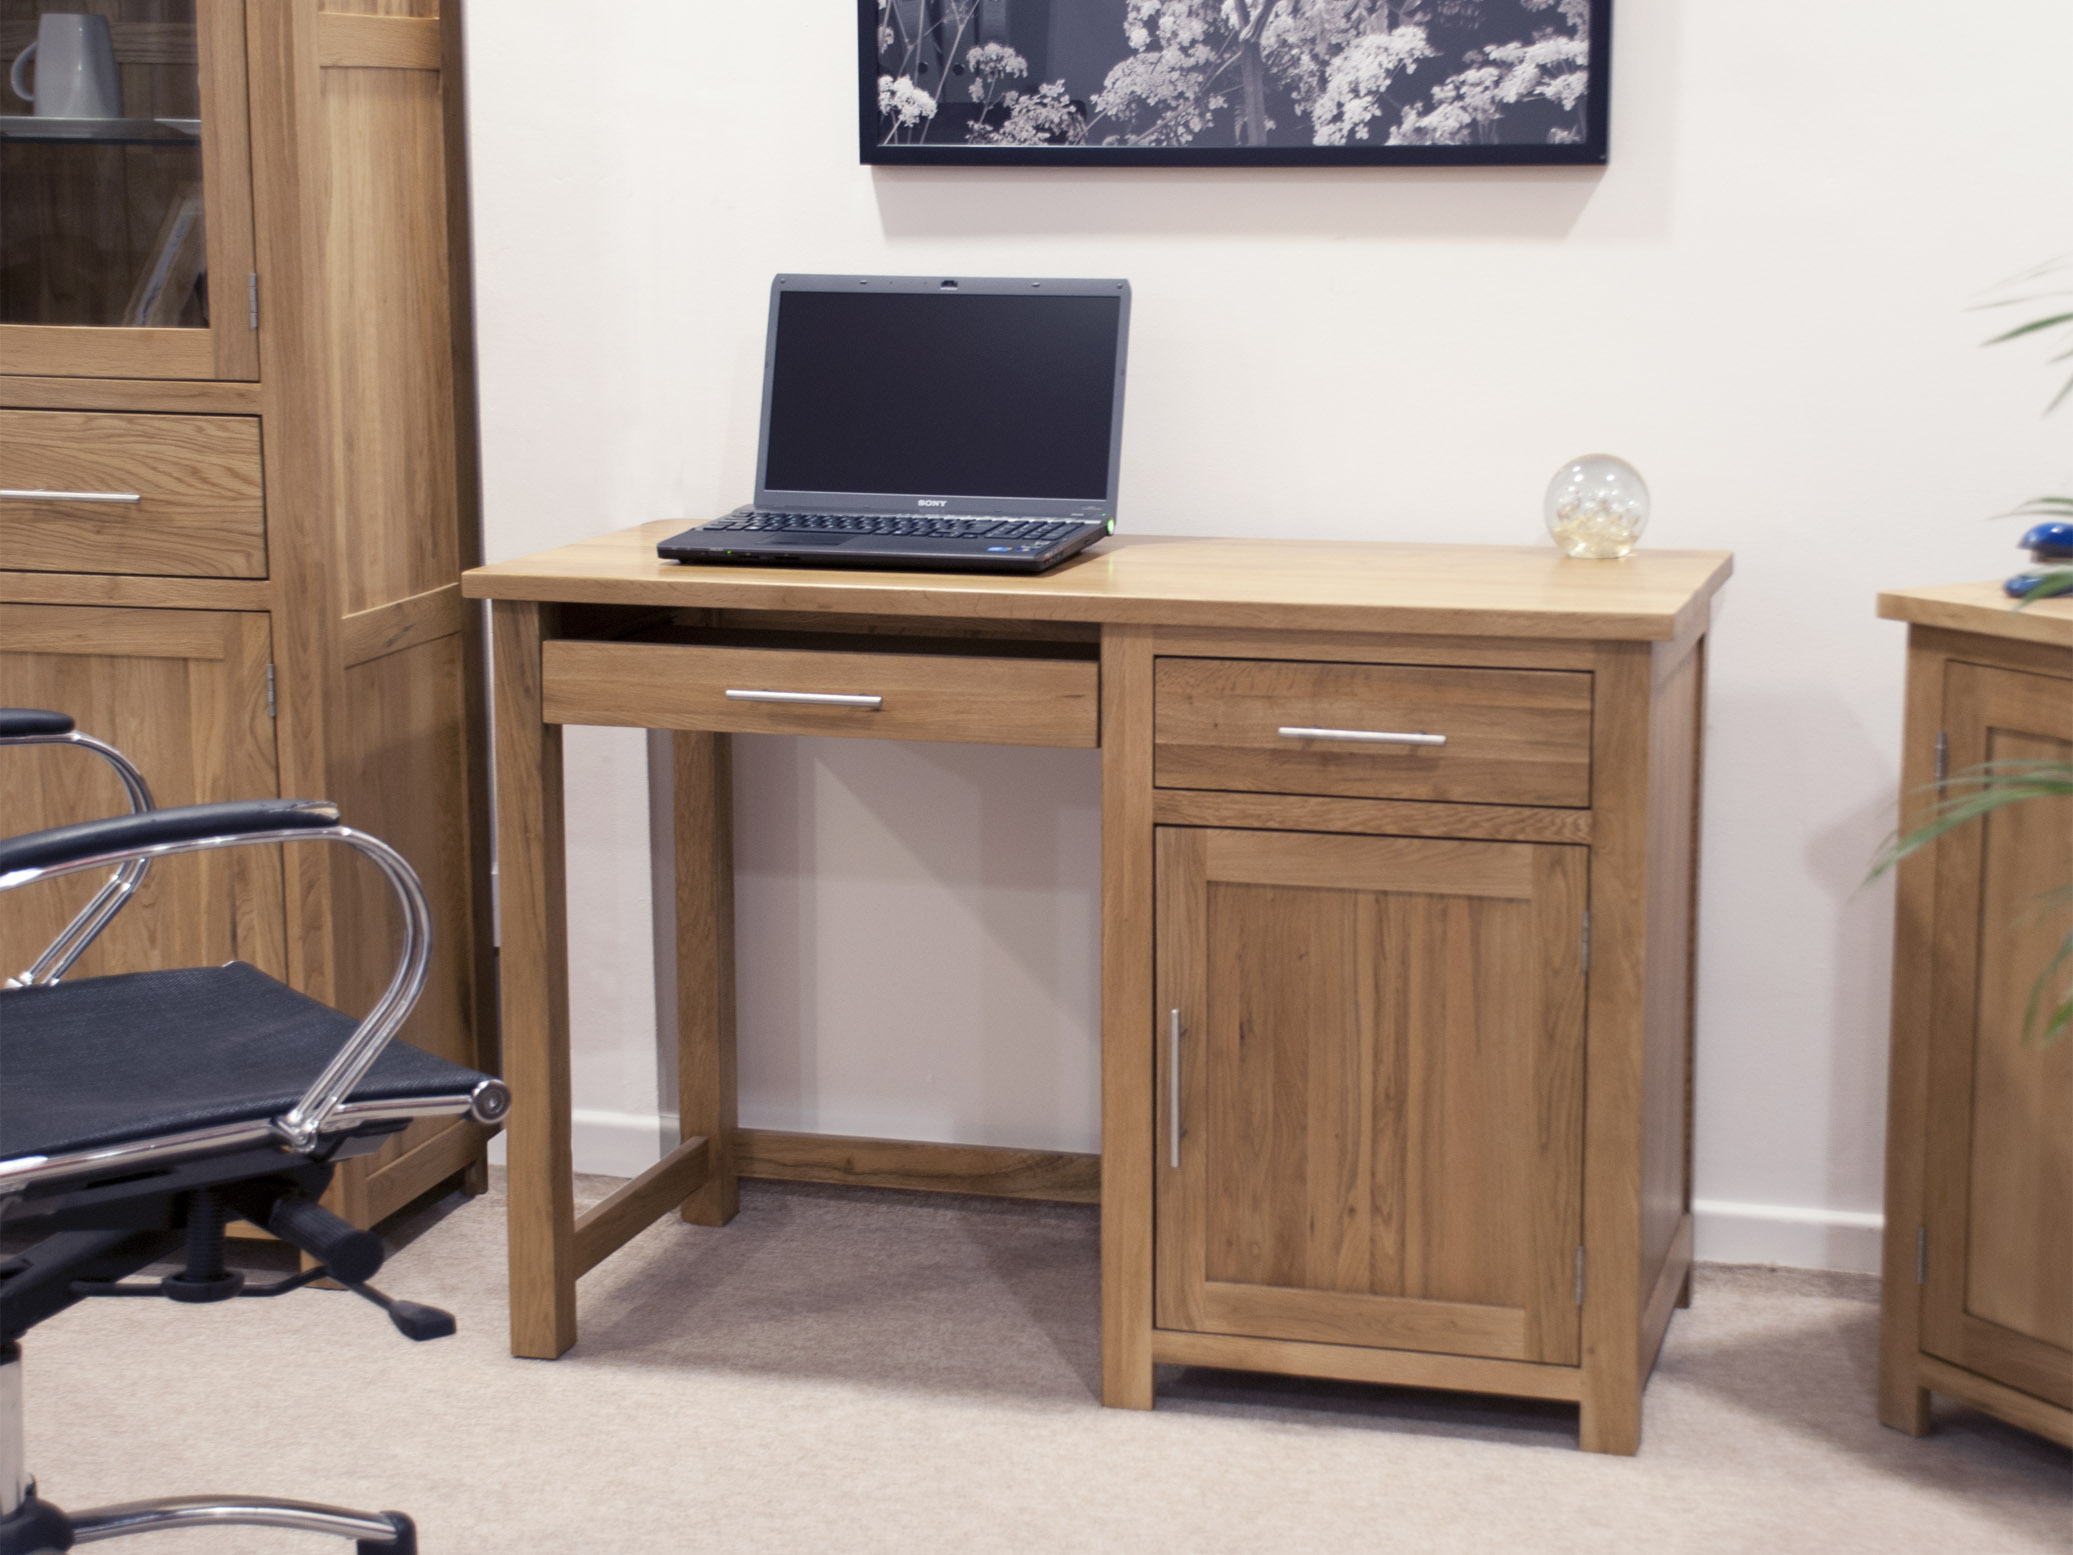 about Windsor solid oak furniture small office PC computer desk